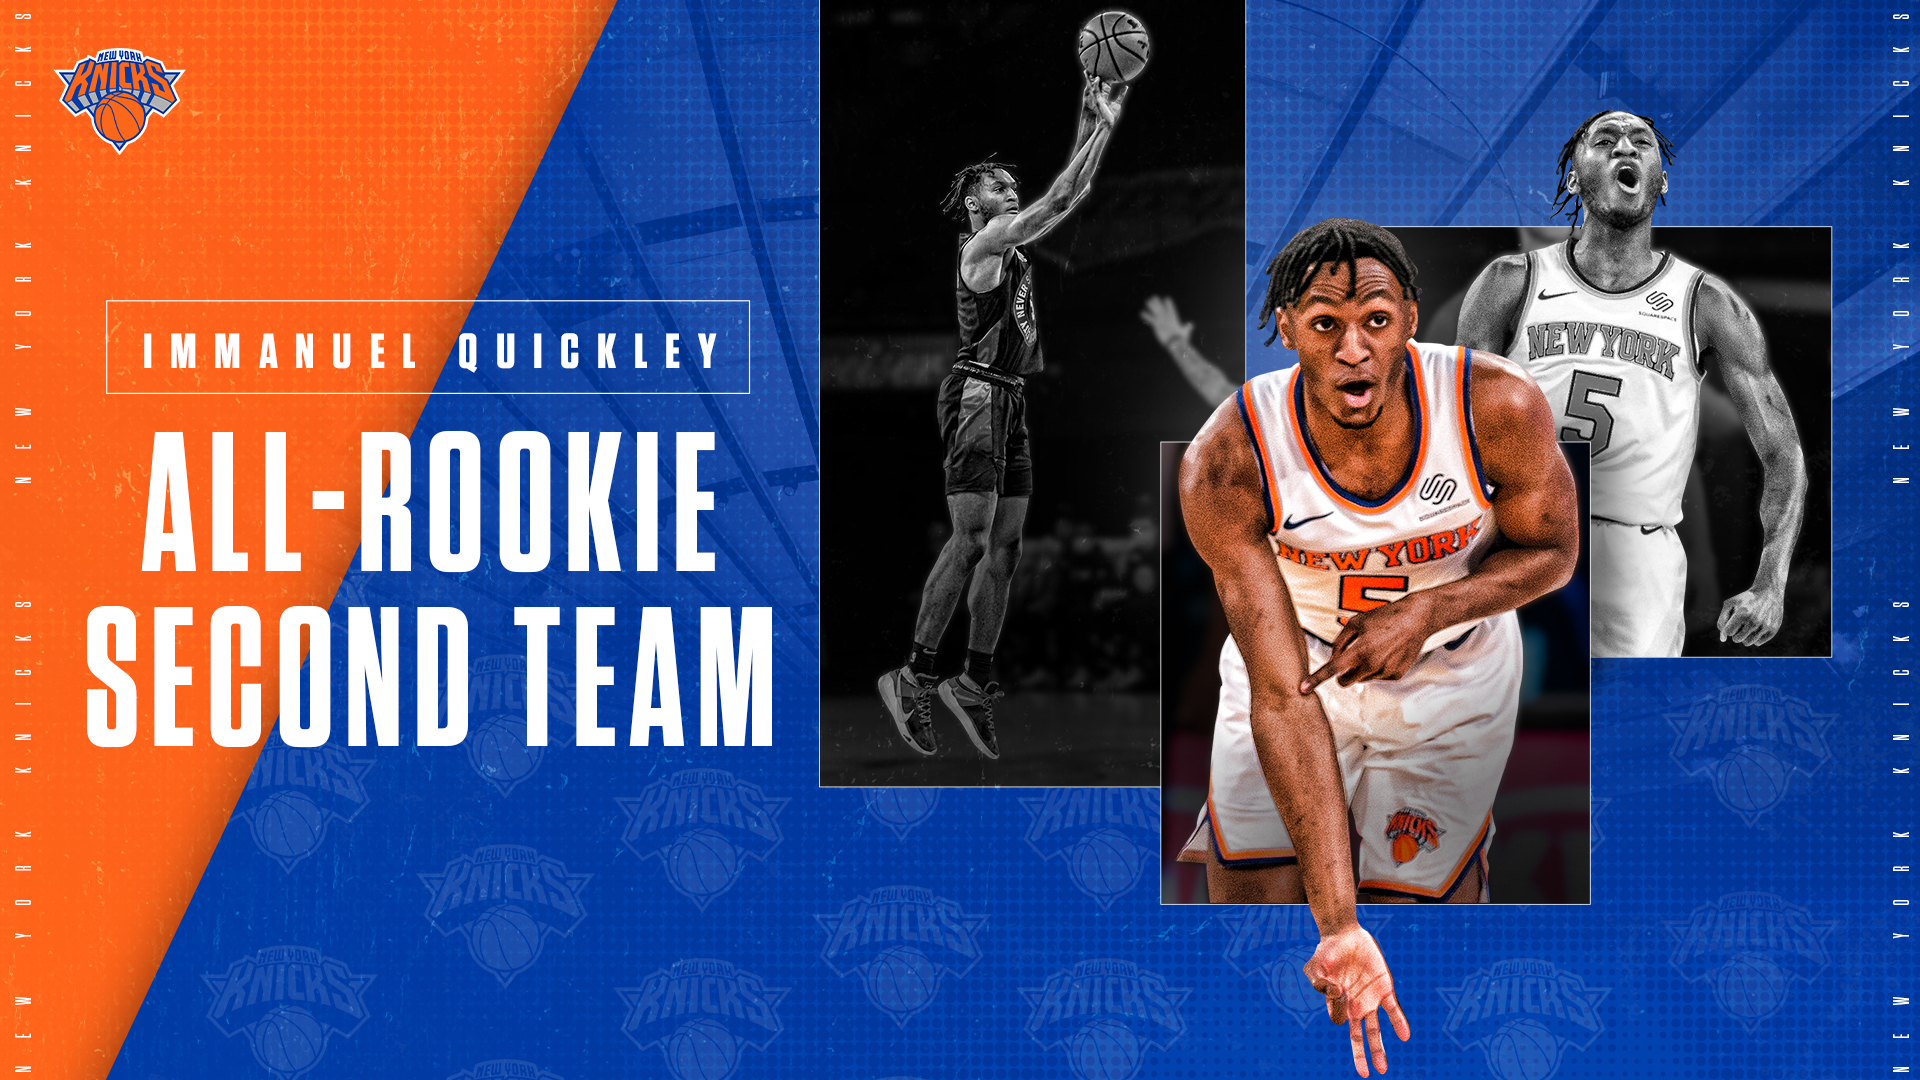 Immanuel Quickley Named to the 2020-21 All-Rookie Second Team